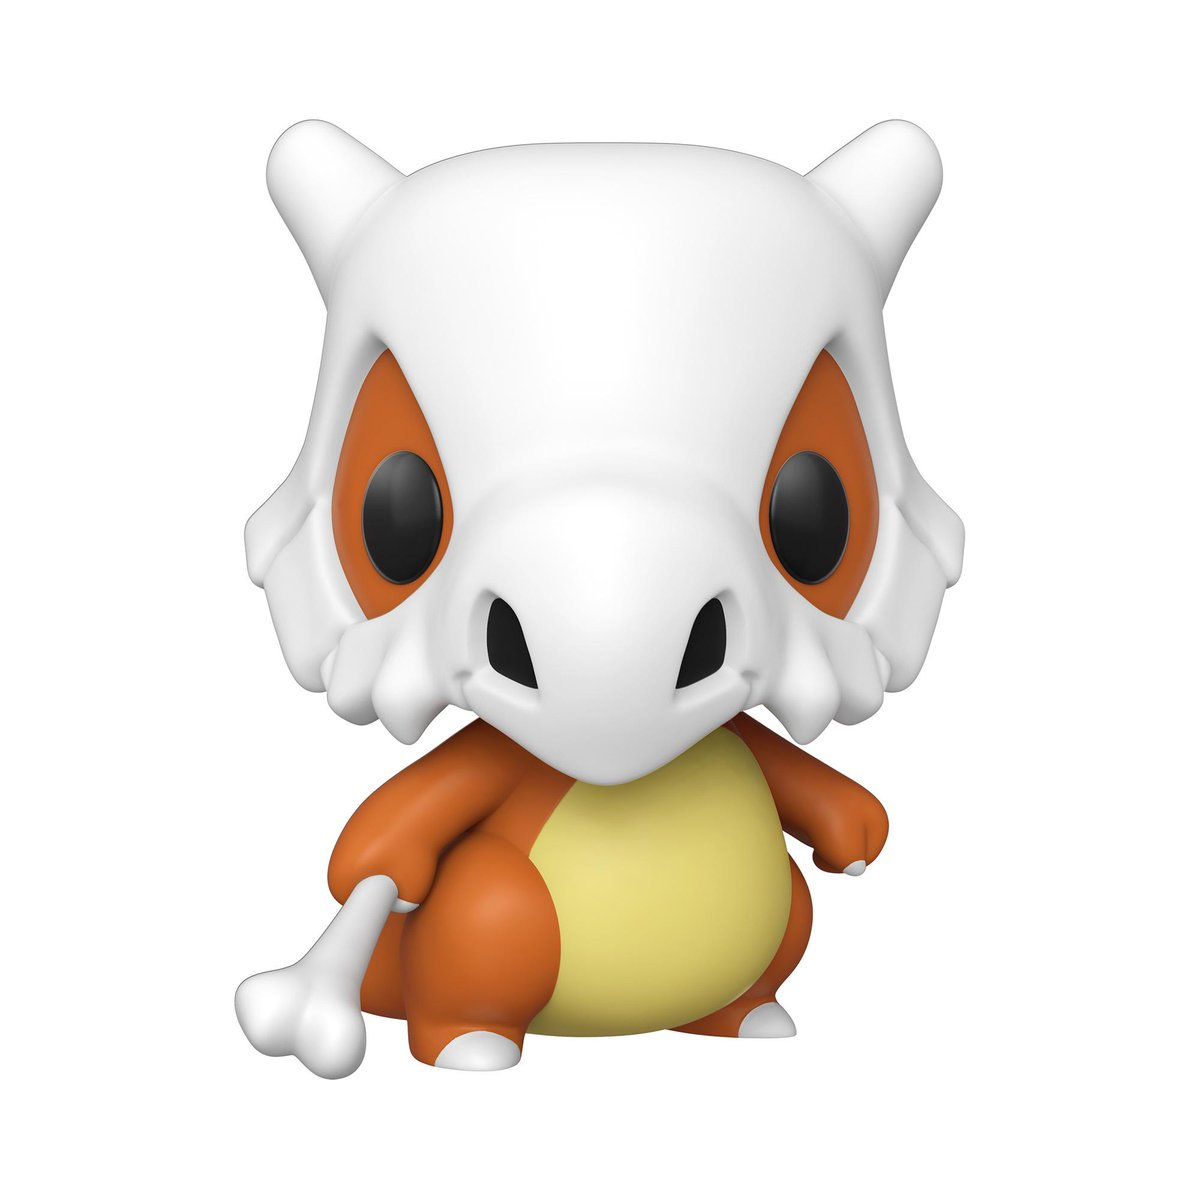 """RT & follow @OriginalFunko for the chance to WIN this Target exclusive 10"""" Cubone Pop! #Funko #FunkoPop #Funkogiveaway #giveaway #PokemonDay"""